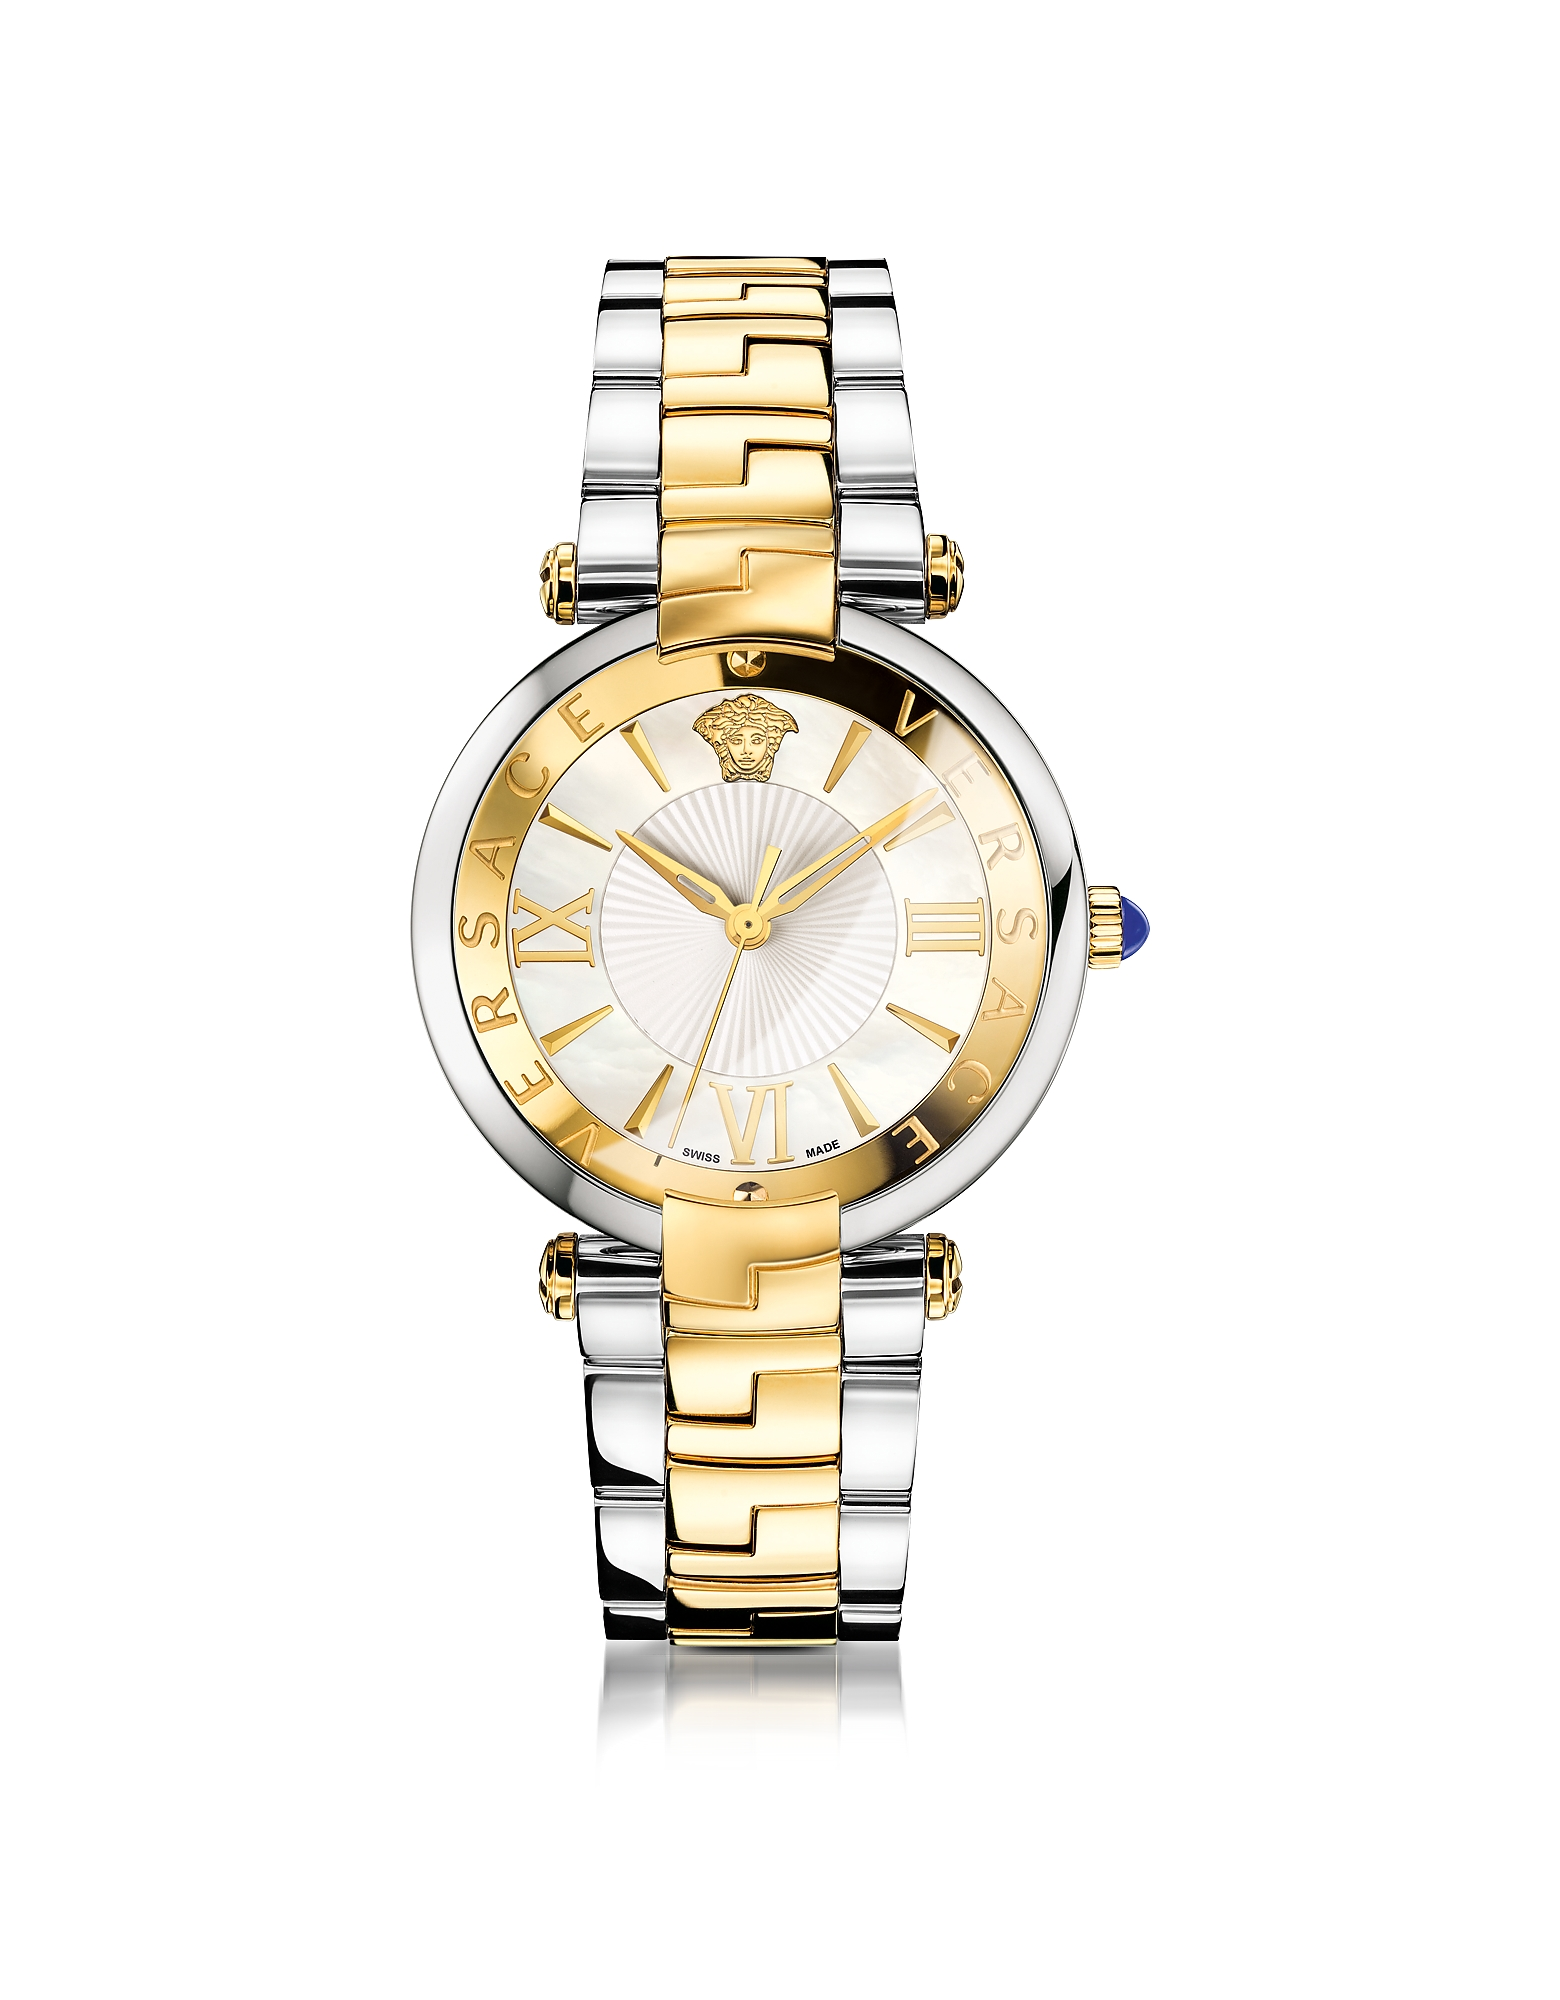 Versace Women's Watches, Revive 3H Stainless Steel and PVD Gold Plated Women's Watch w/White Mother